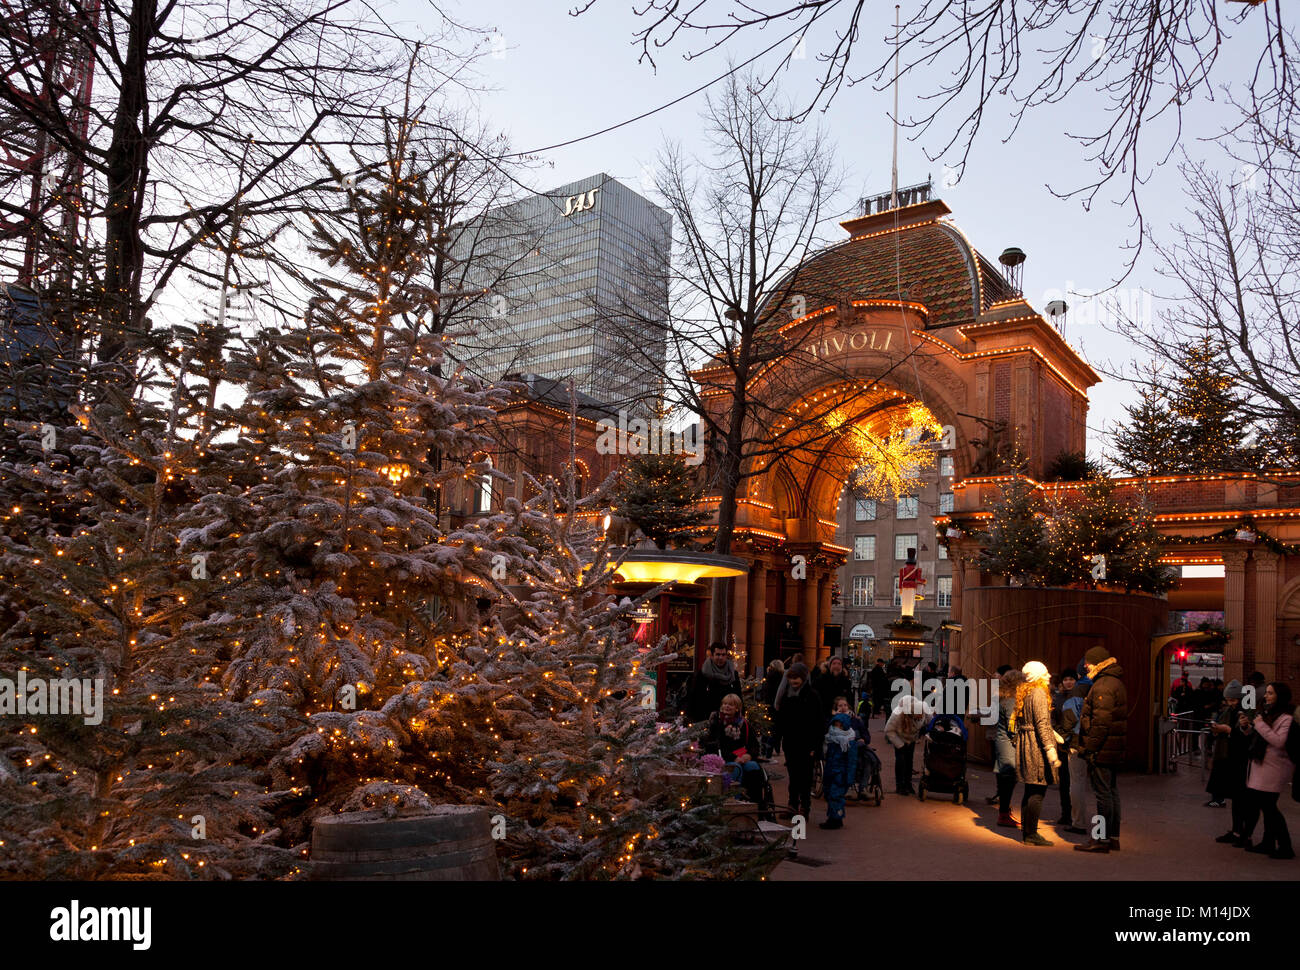 View out of the main entrance of the Tivoli Gardens in Copenhagen at dusk during Christmas market opening. The SAS - Stock Image